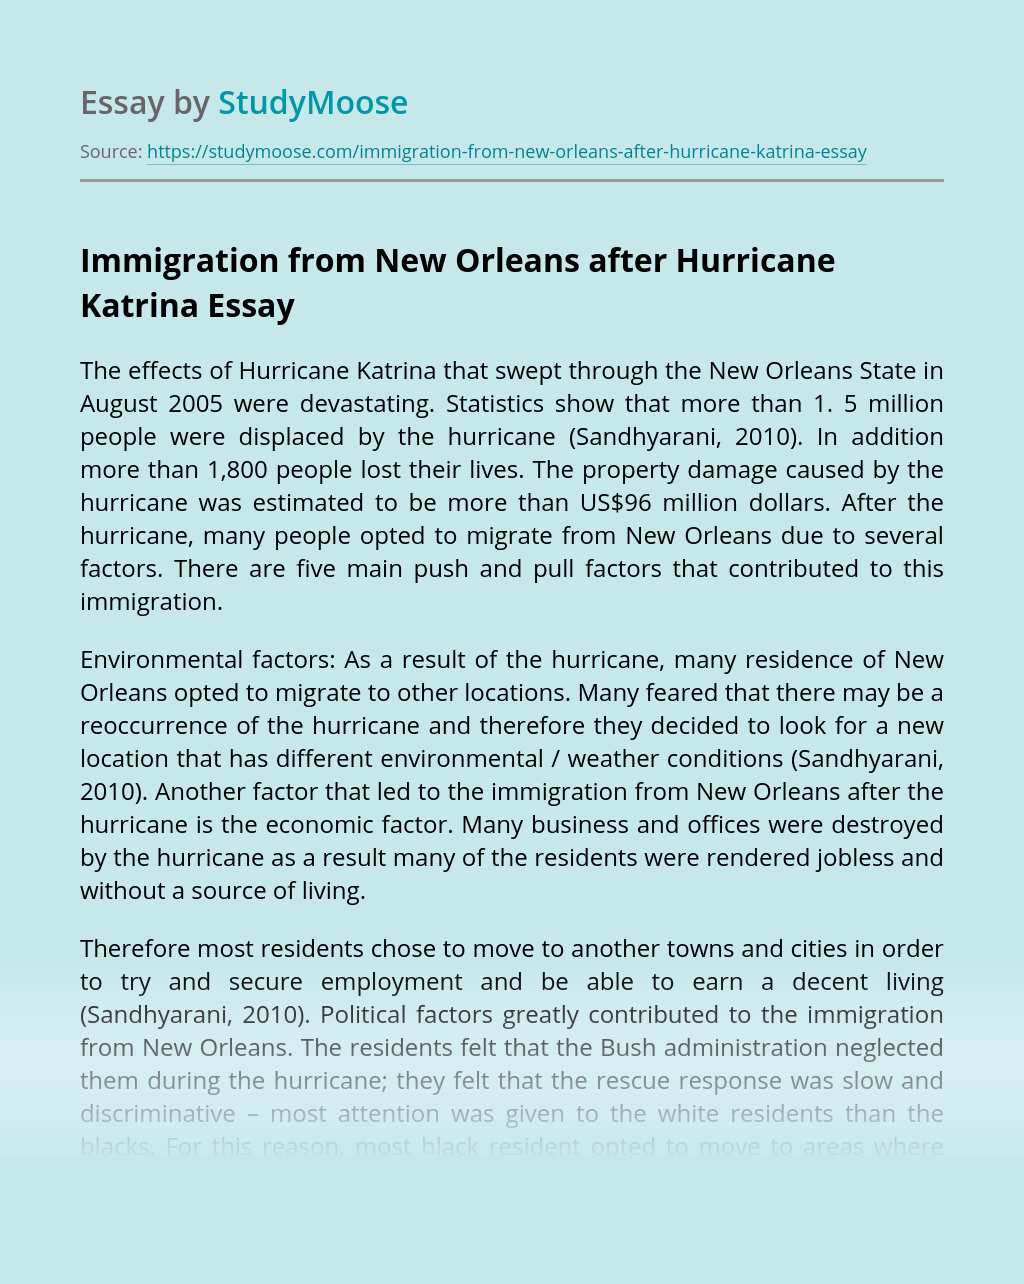 Immigration from New Orleans after Hurricane Katrina